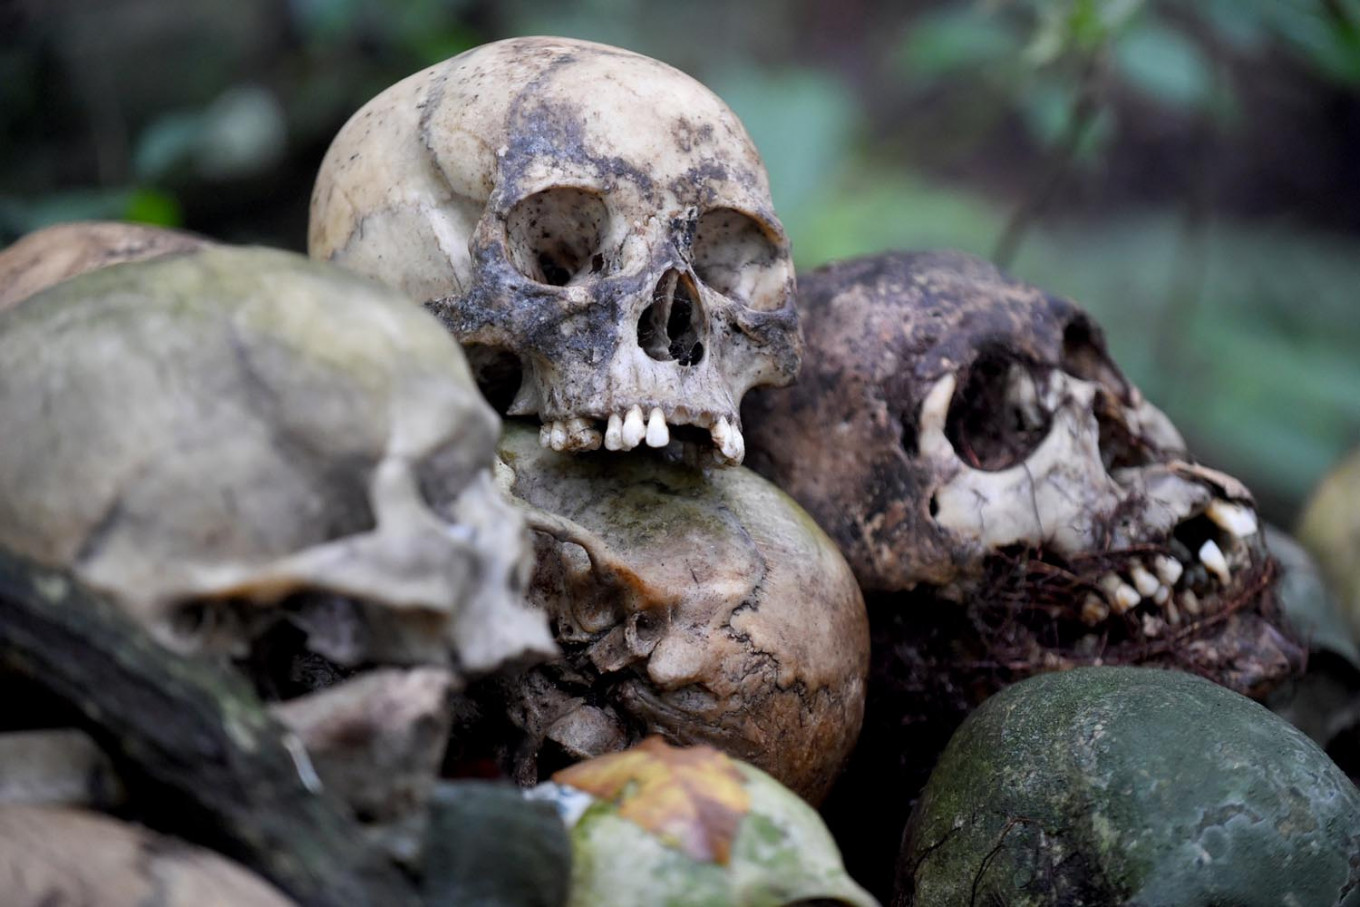 This picture taken on February 20, 2020 shows skulls at a cemetery where Bali's Trunyanese people hold open-air burials - before restrictions were implemented due to the COVID-19 coronavirus - near the village of Trunyan in Bangli Regency, near Lake Batur on Bali island. - For centuries Bali's Trunyanese people have left their dead to decompose in the open air, the bodies placed in bamboo cages until only the skeletons remain -- a ritual they haven't given up -- even as the COVID-19 pandemic upends burial practices worldwide. AFP/Sonny Tumbelaka